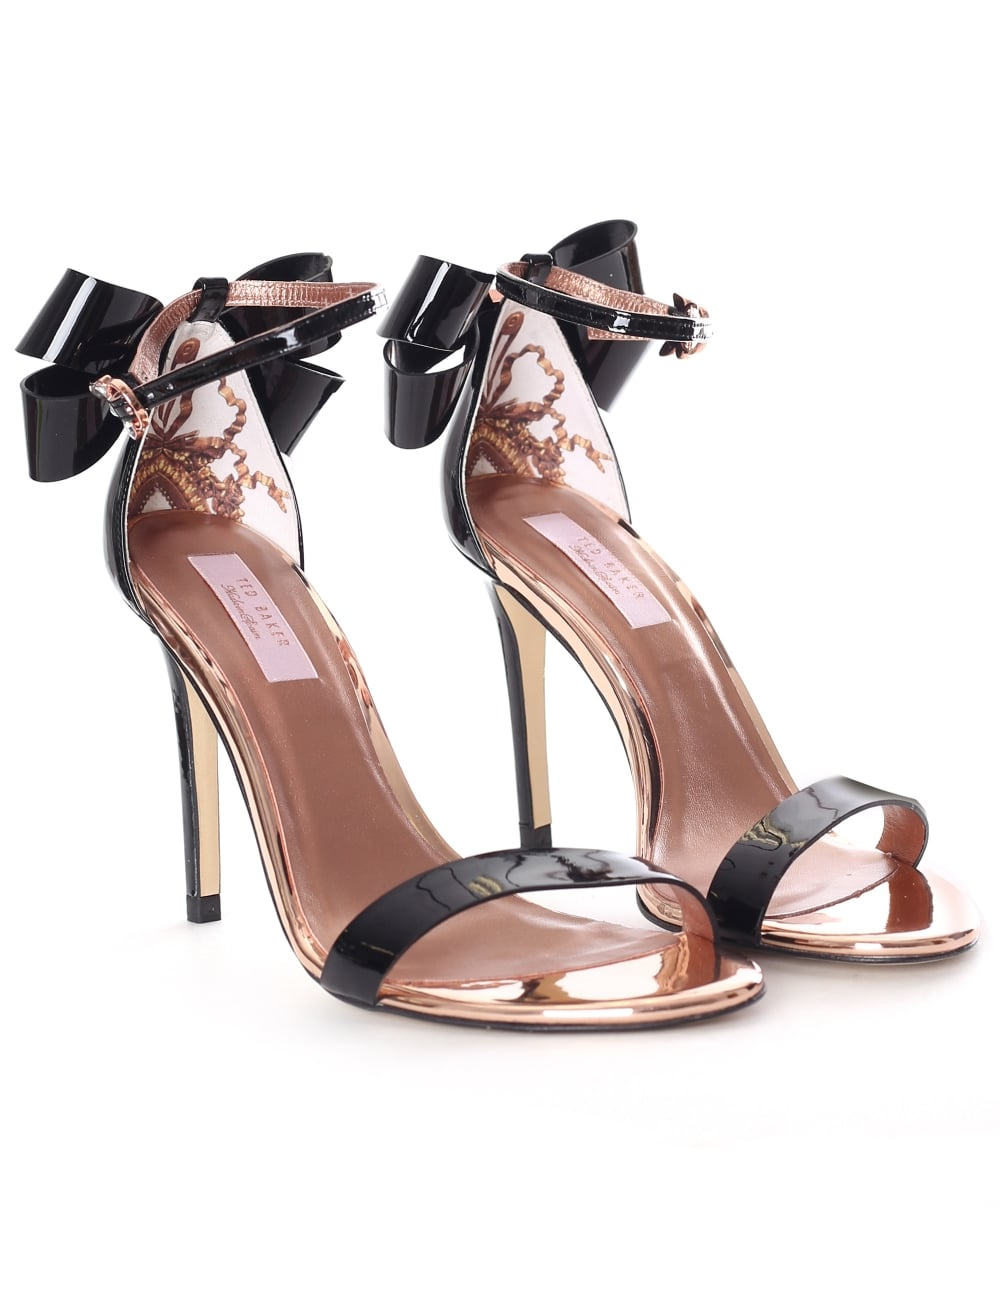 036cbca2fcbe8b Ted Baker Sandalo Patent Women s Bow Back Heeled Sandals